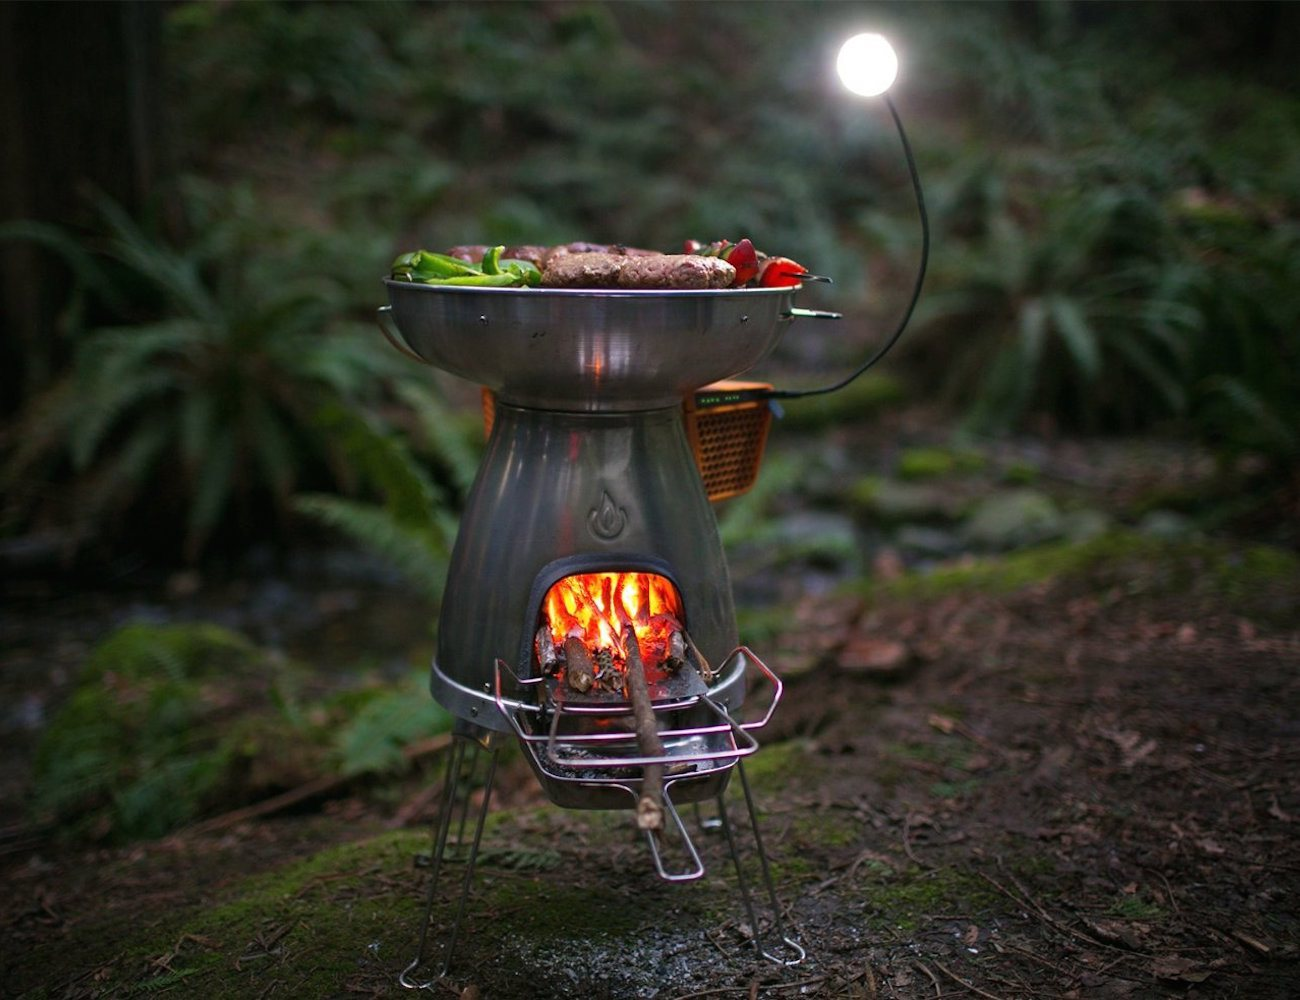 BaseCamp  Wood Burning Stove and Grill by BioLite  Review